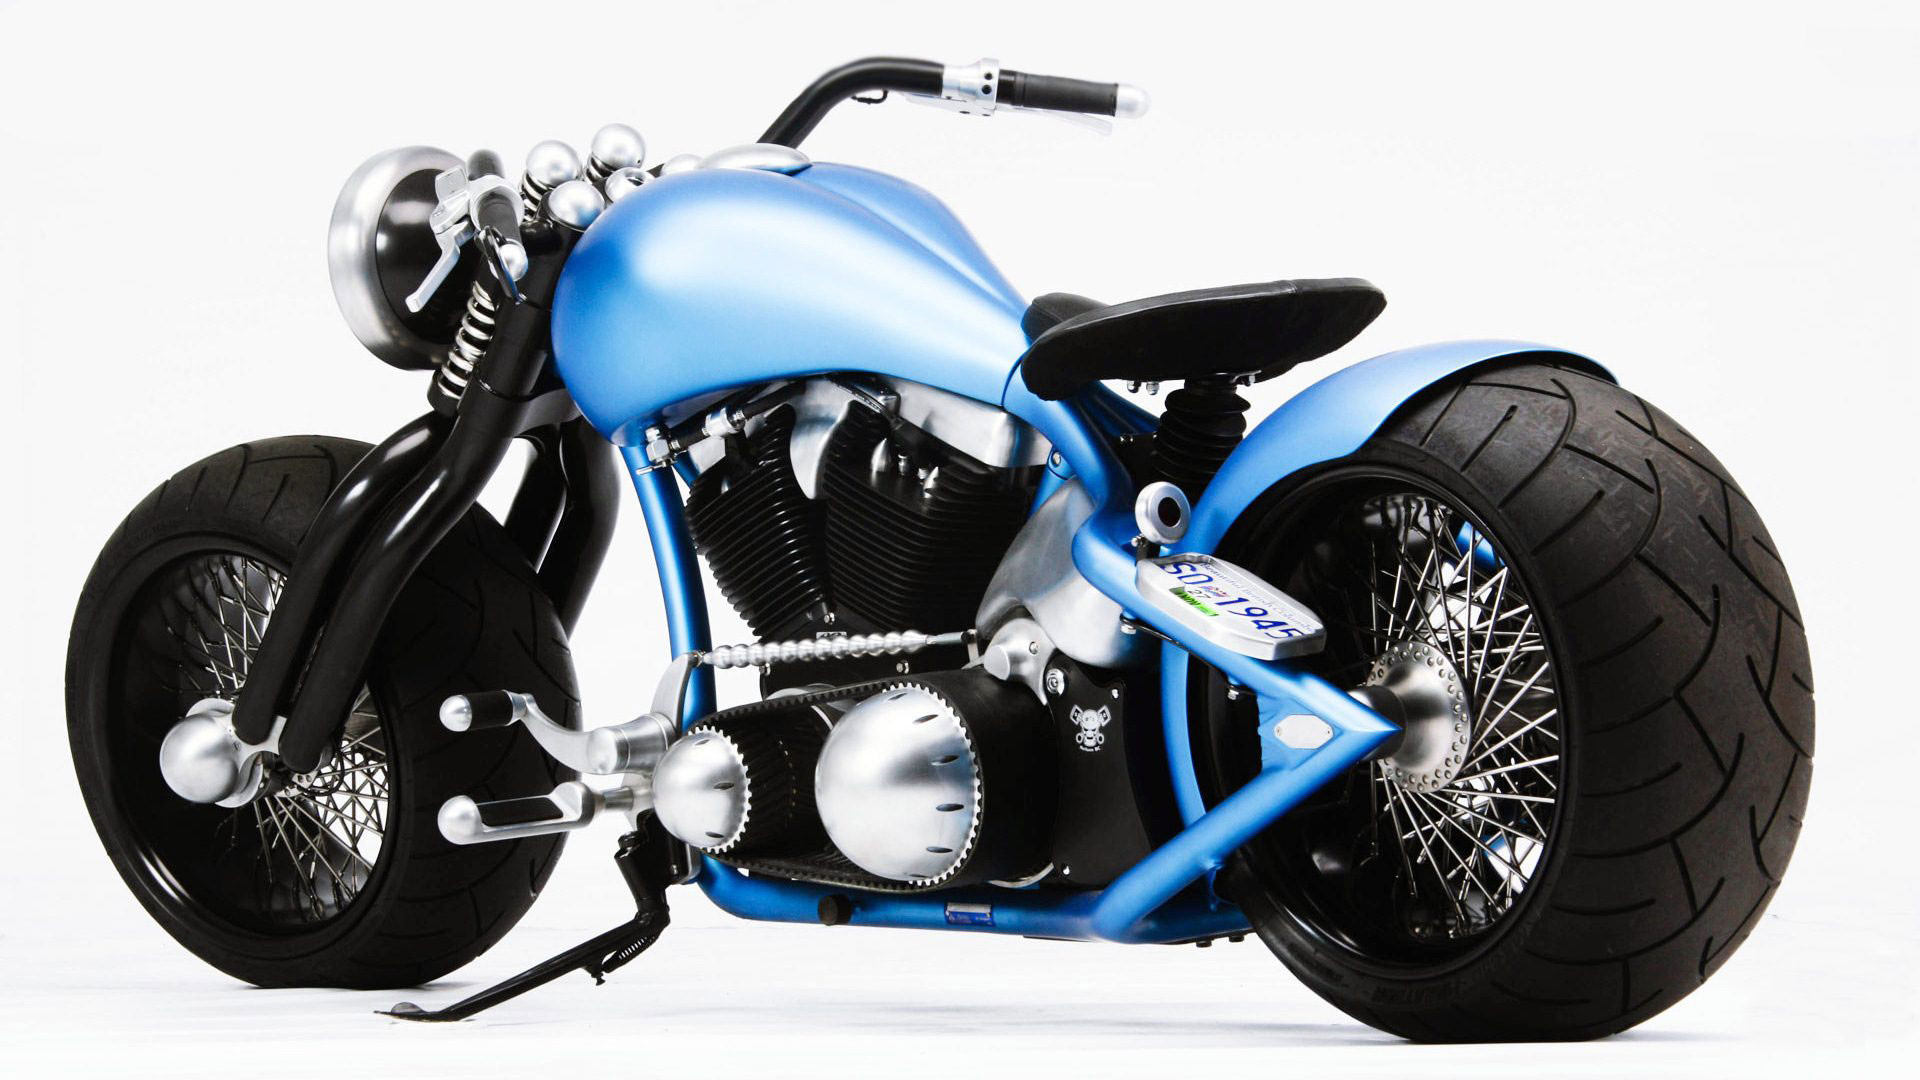 1920x1080 hd pics photos bikes super bike chopper american desktop background  wallpaper